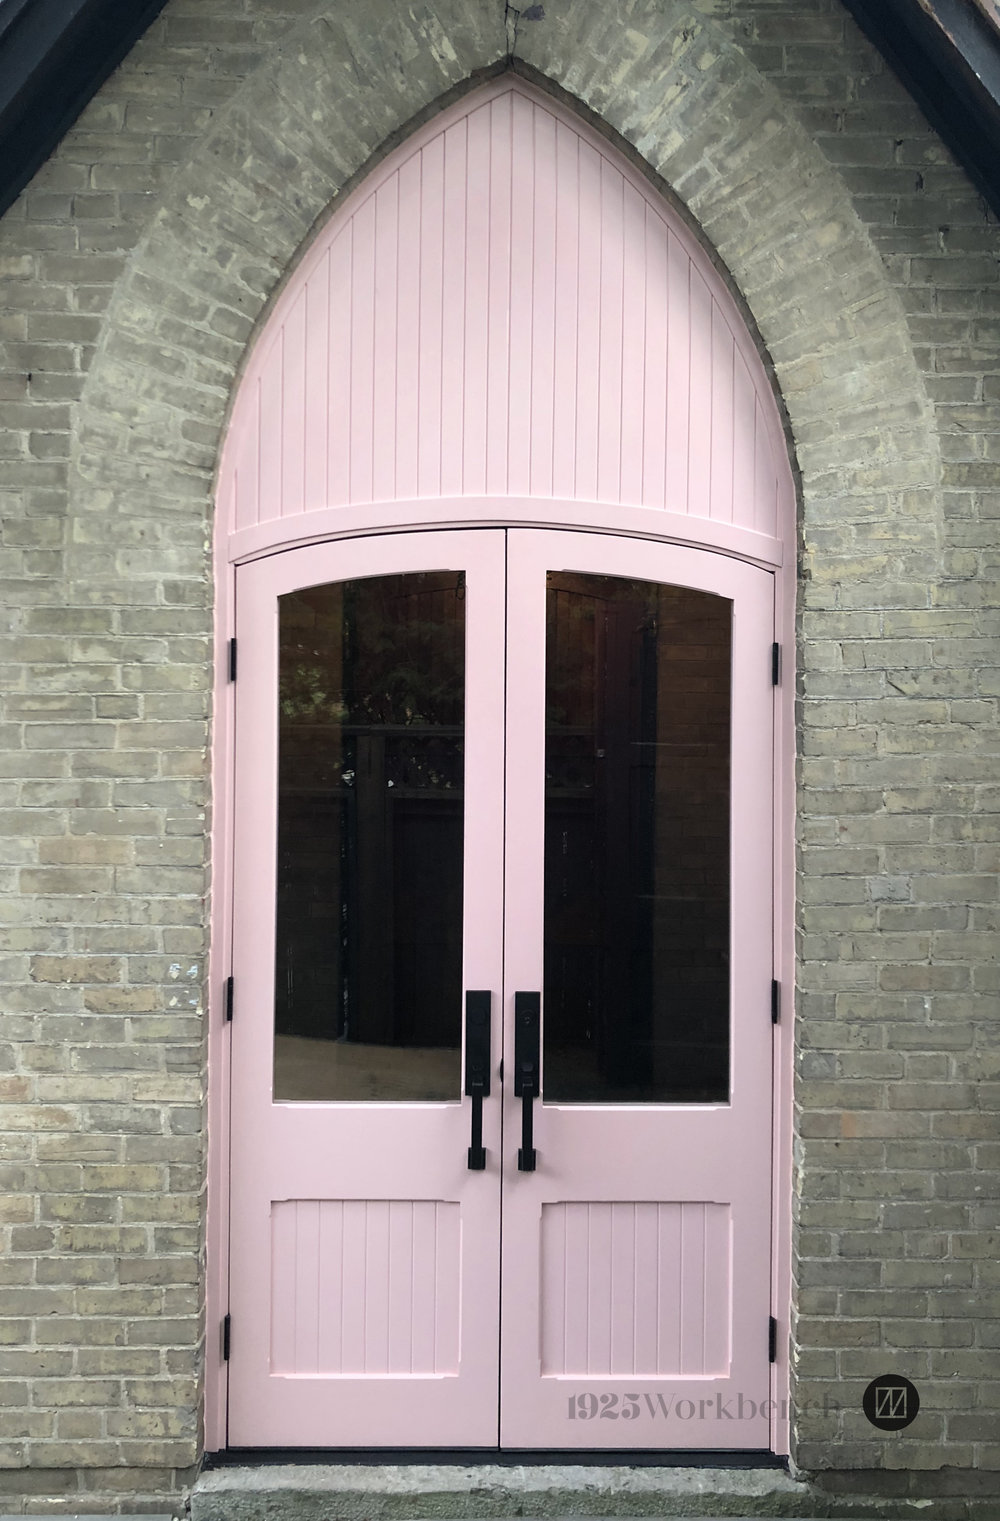 Complete door unit made for a church house in Warkworth, Ontario